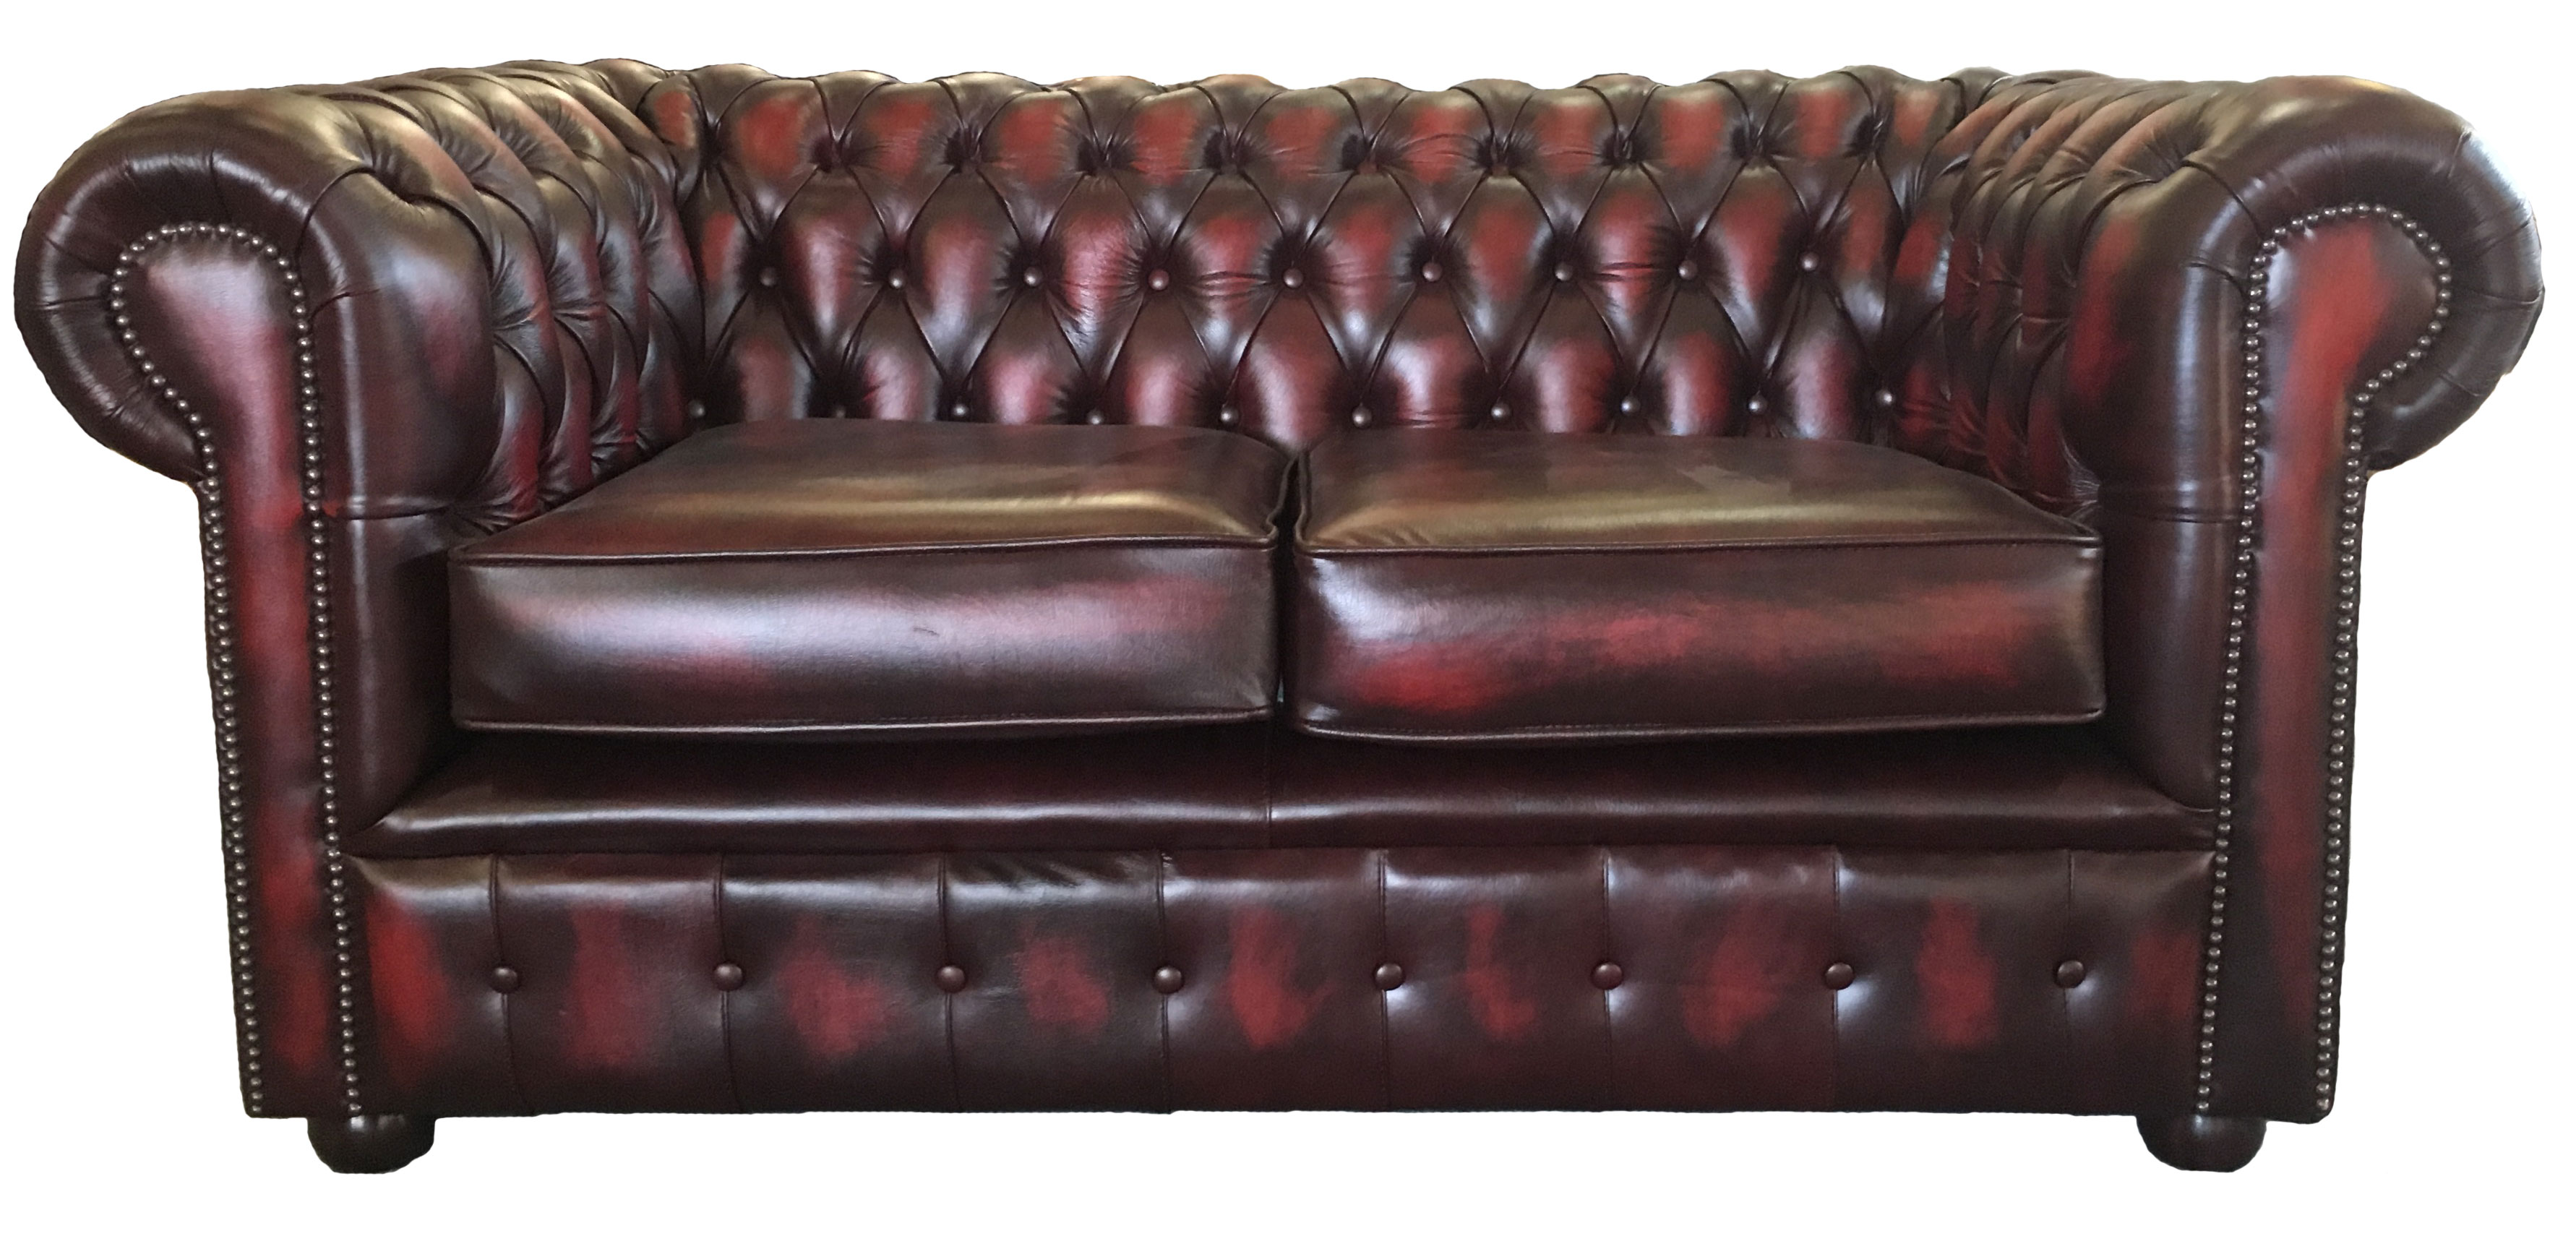 red leather two seater sofa bed bath and beyond sure fit covers antique oxblood vintage style chesterfield genuine